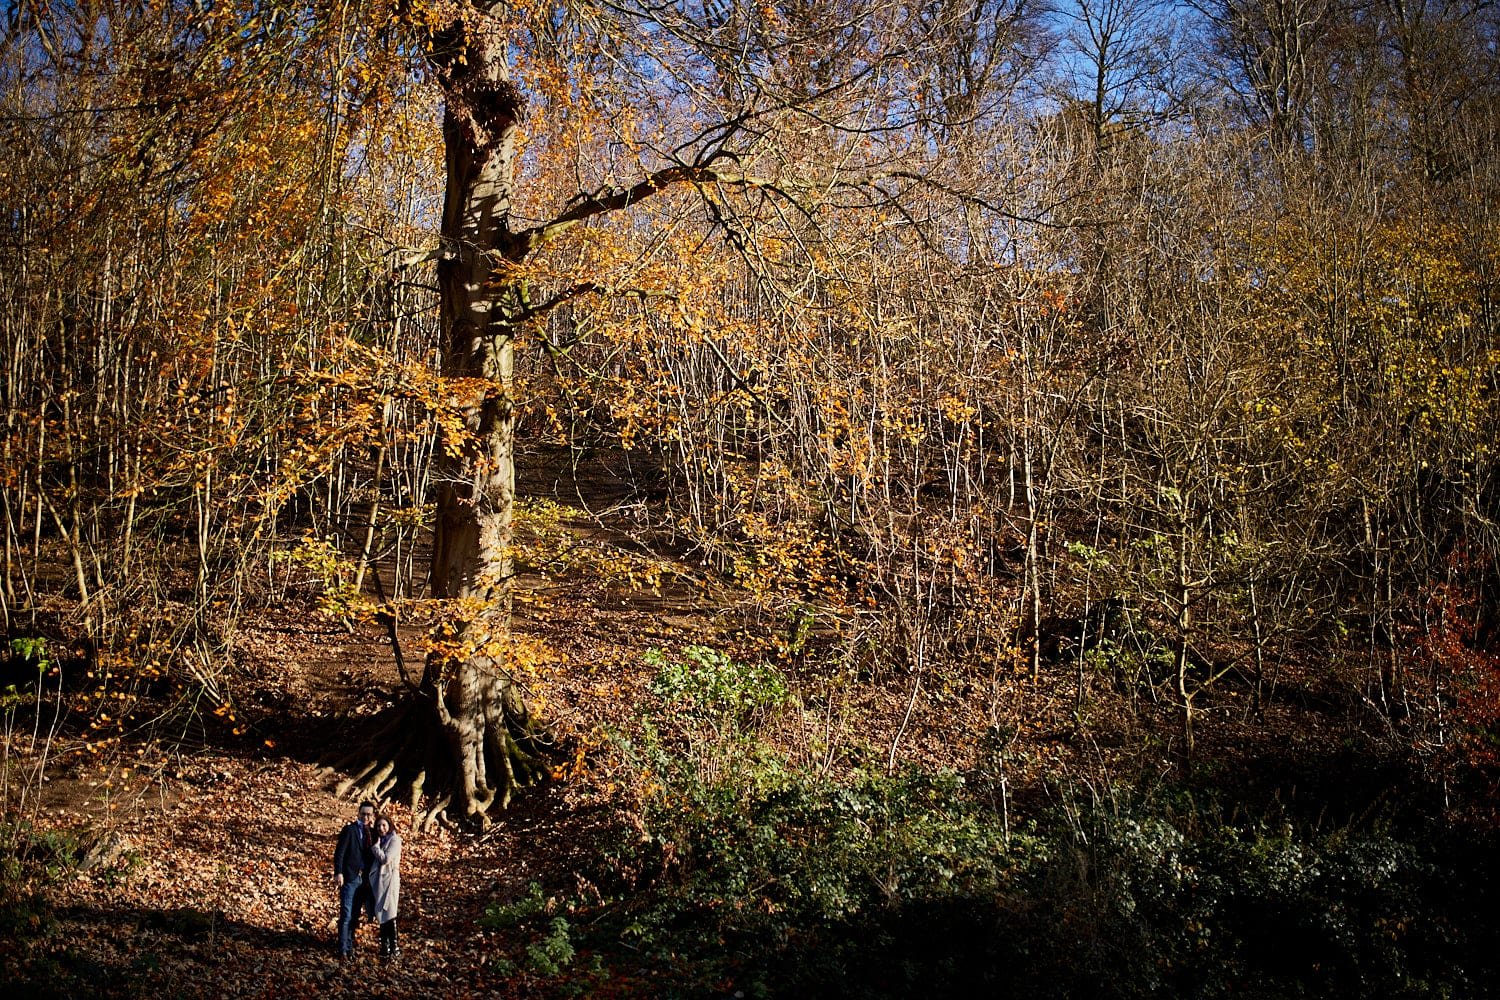 A beautiful couple pose against a winter backdrop of fallen leaves at at Hubbards Hills, Louth, Lincolnshire